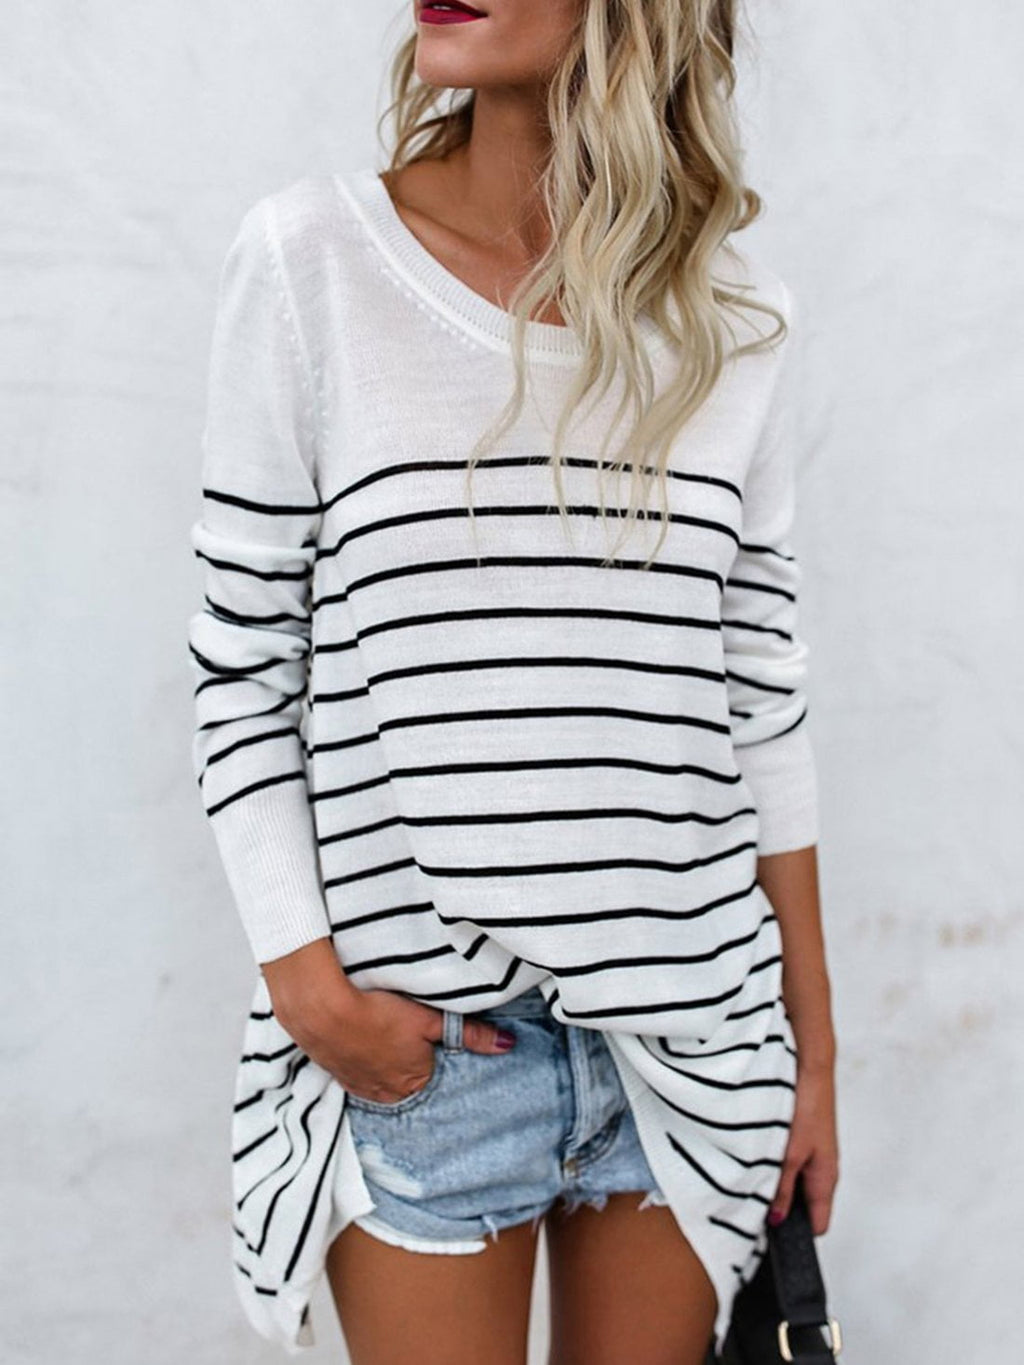 Round Neck Long Sleeve Knit Striped Tee Shirt